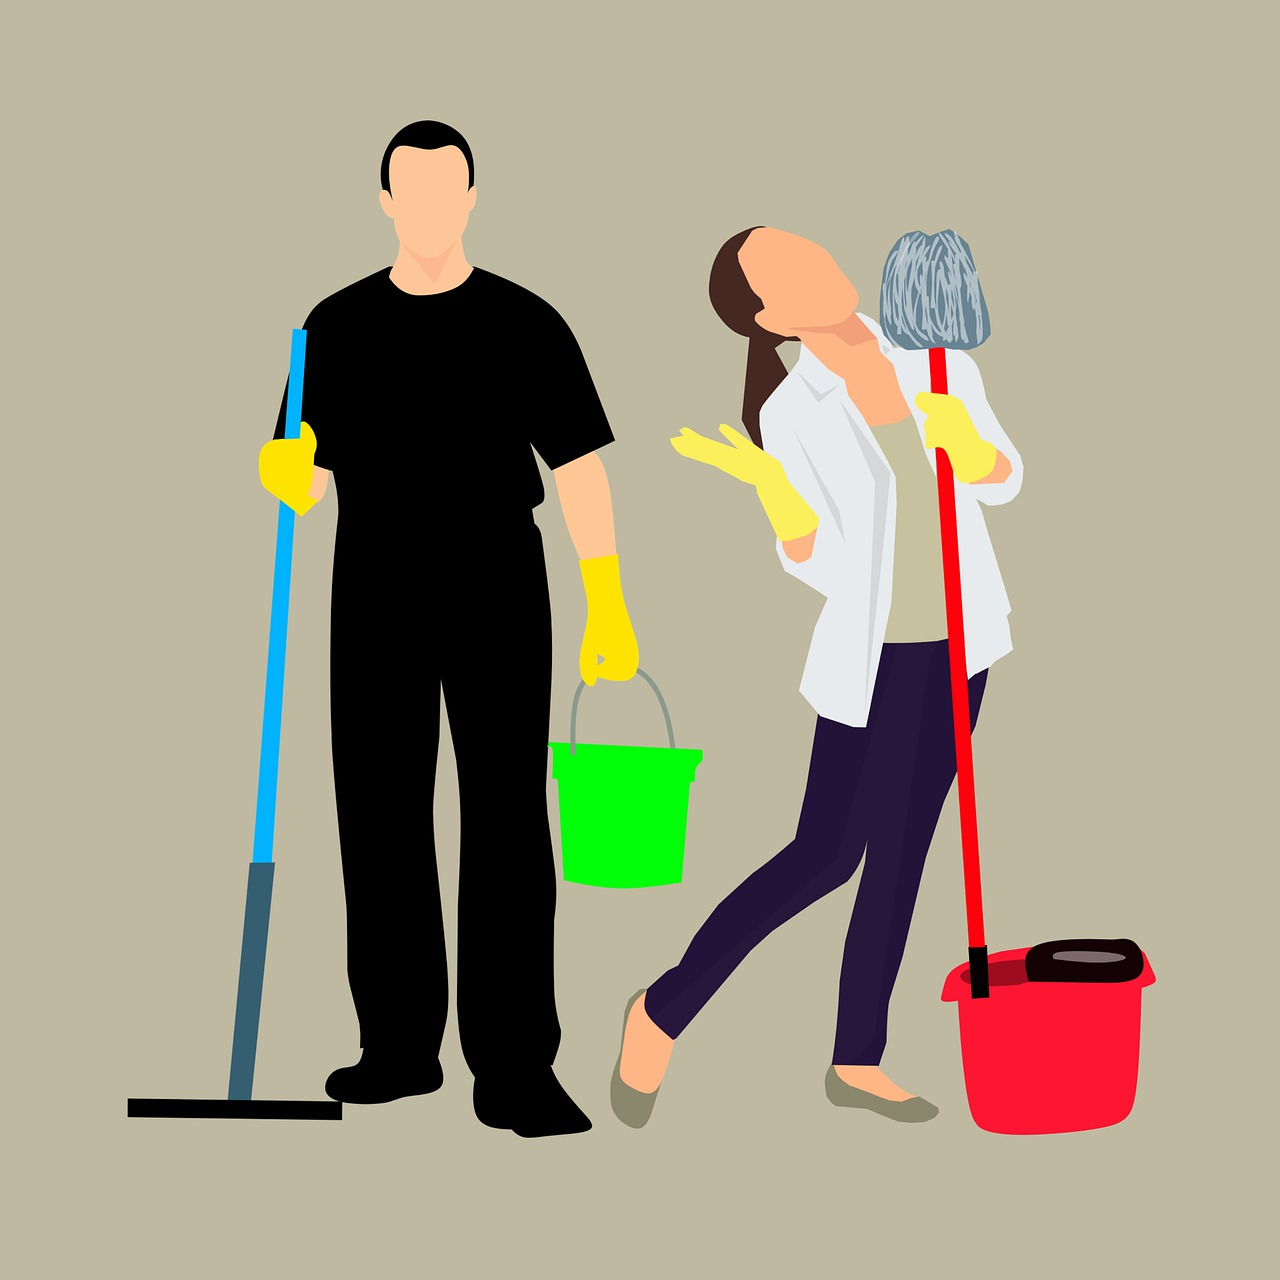 image - 6 Professional House Cleaning Tips to Save Time